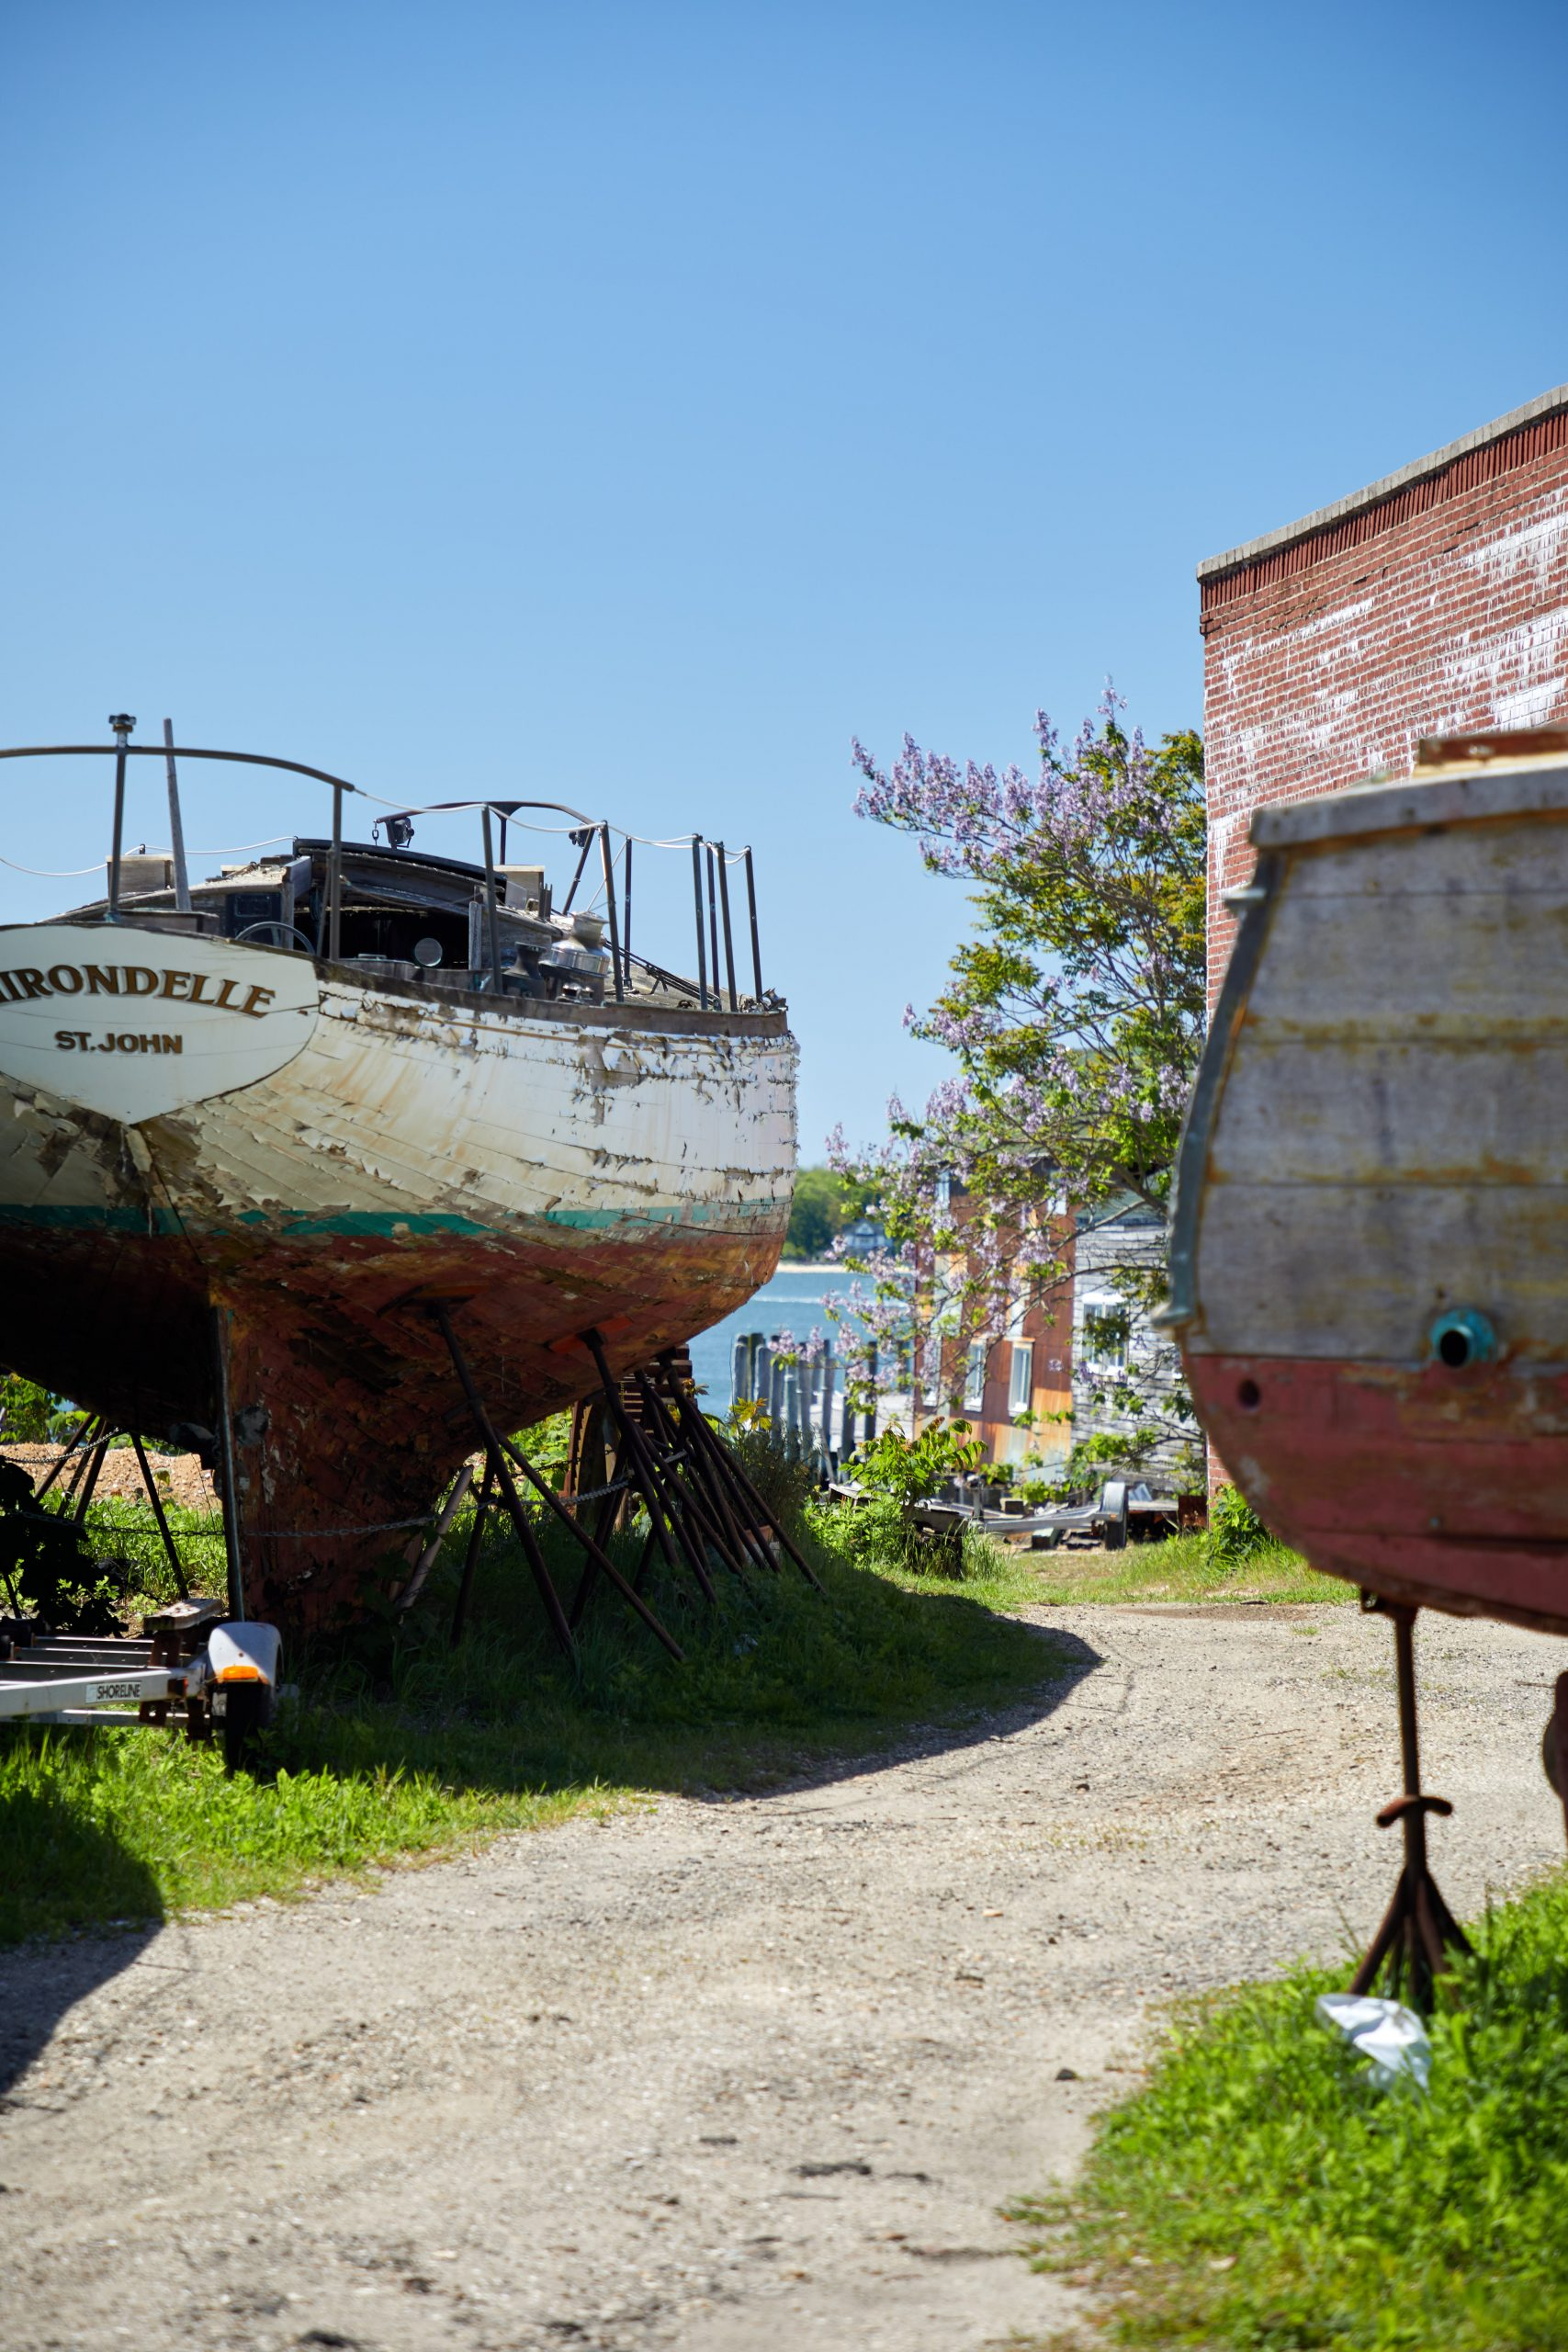 Old rusted ships sitting in the grass